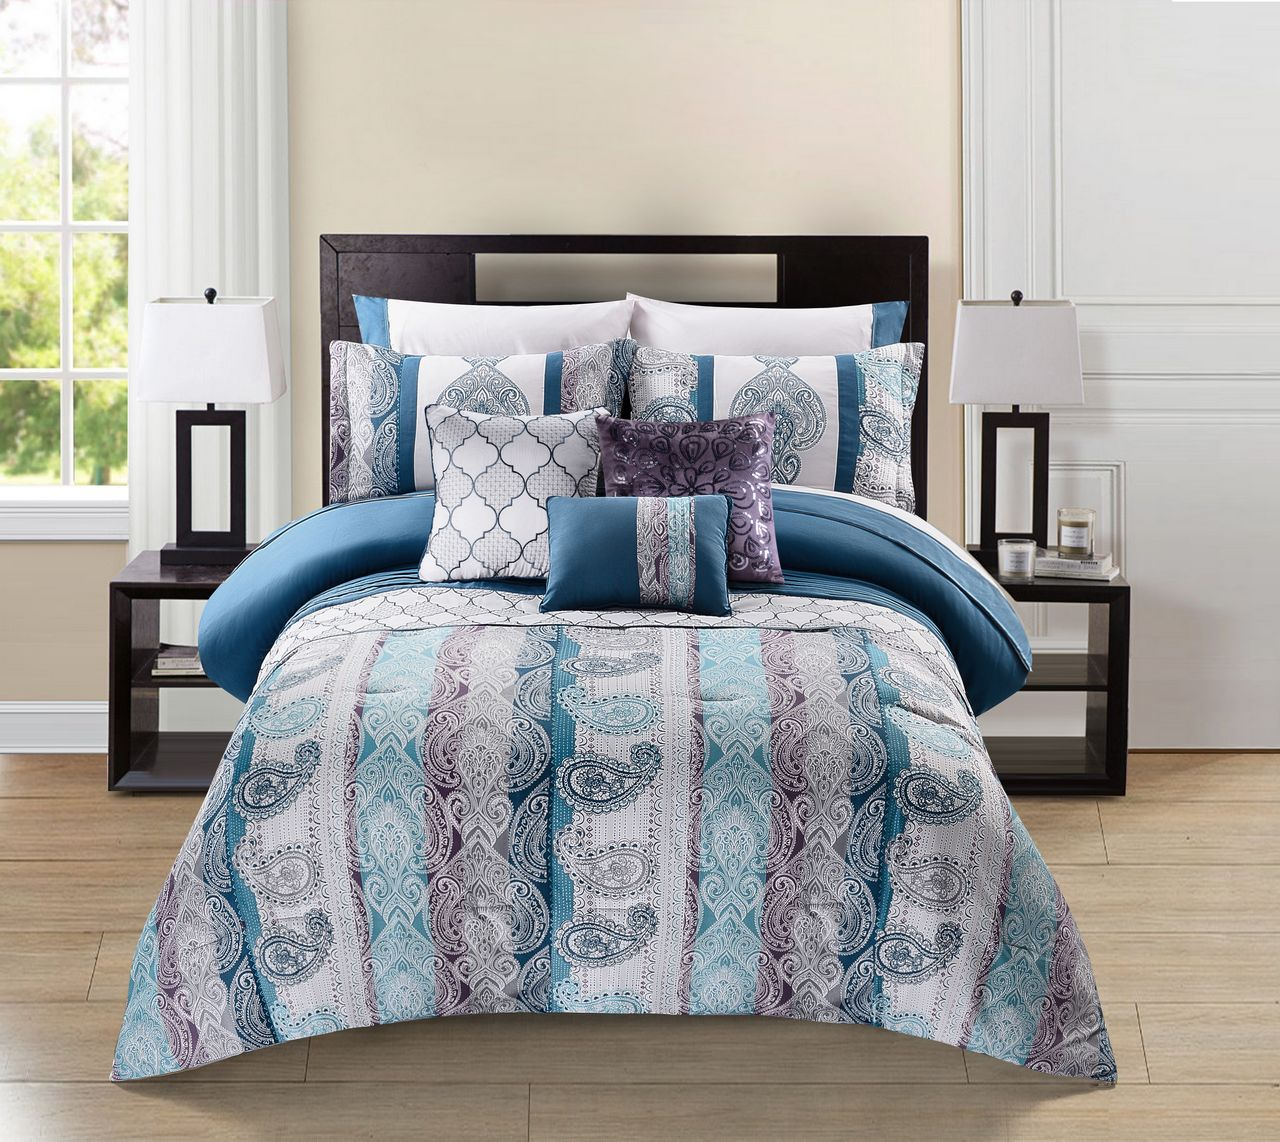 10 Piece Meryanne Teal/Gray/Plum Comforter Set w/Sheets - Walmart.com